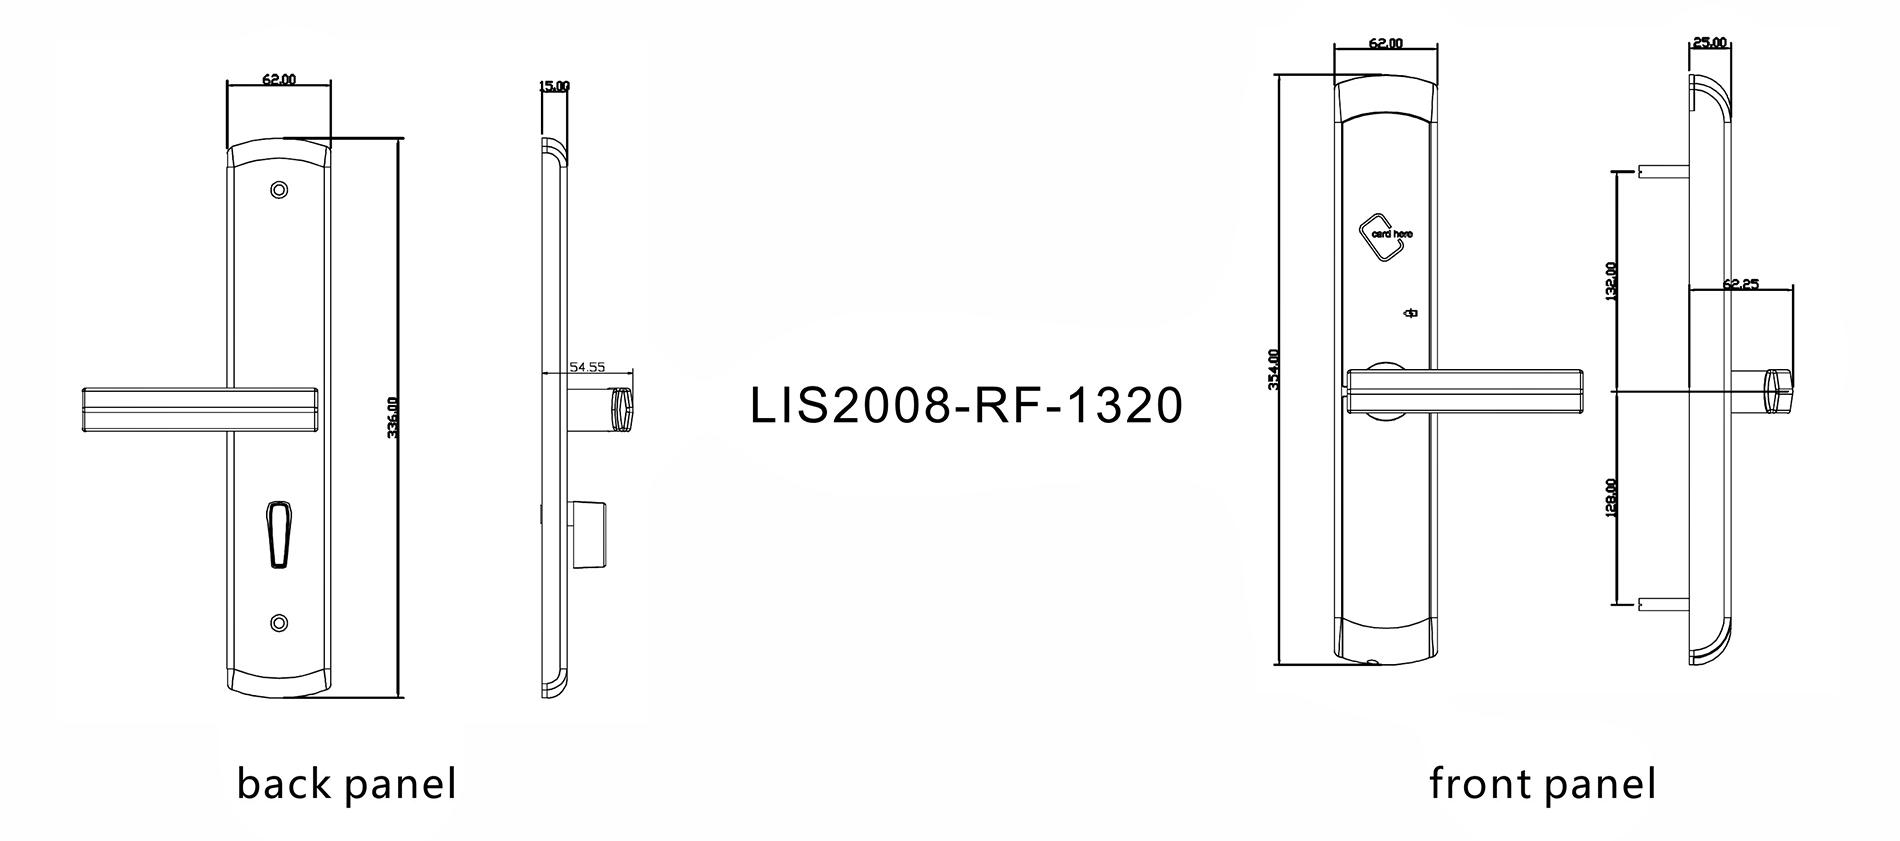 hotel room security door locks rfs800l for guesthouse Level